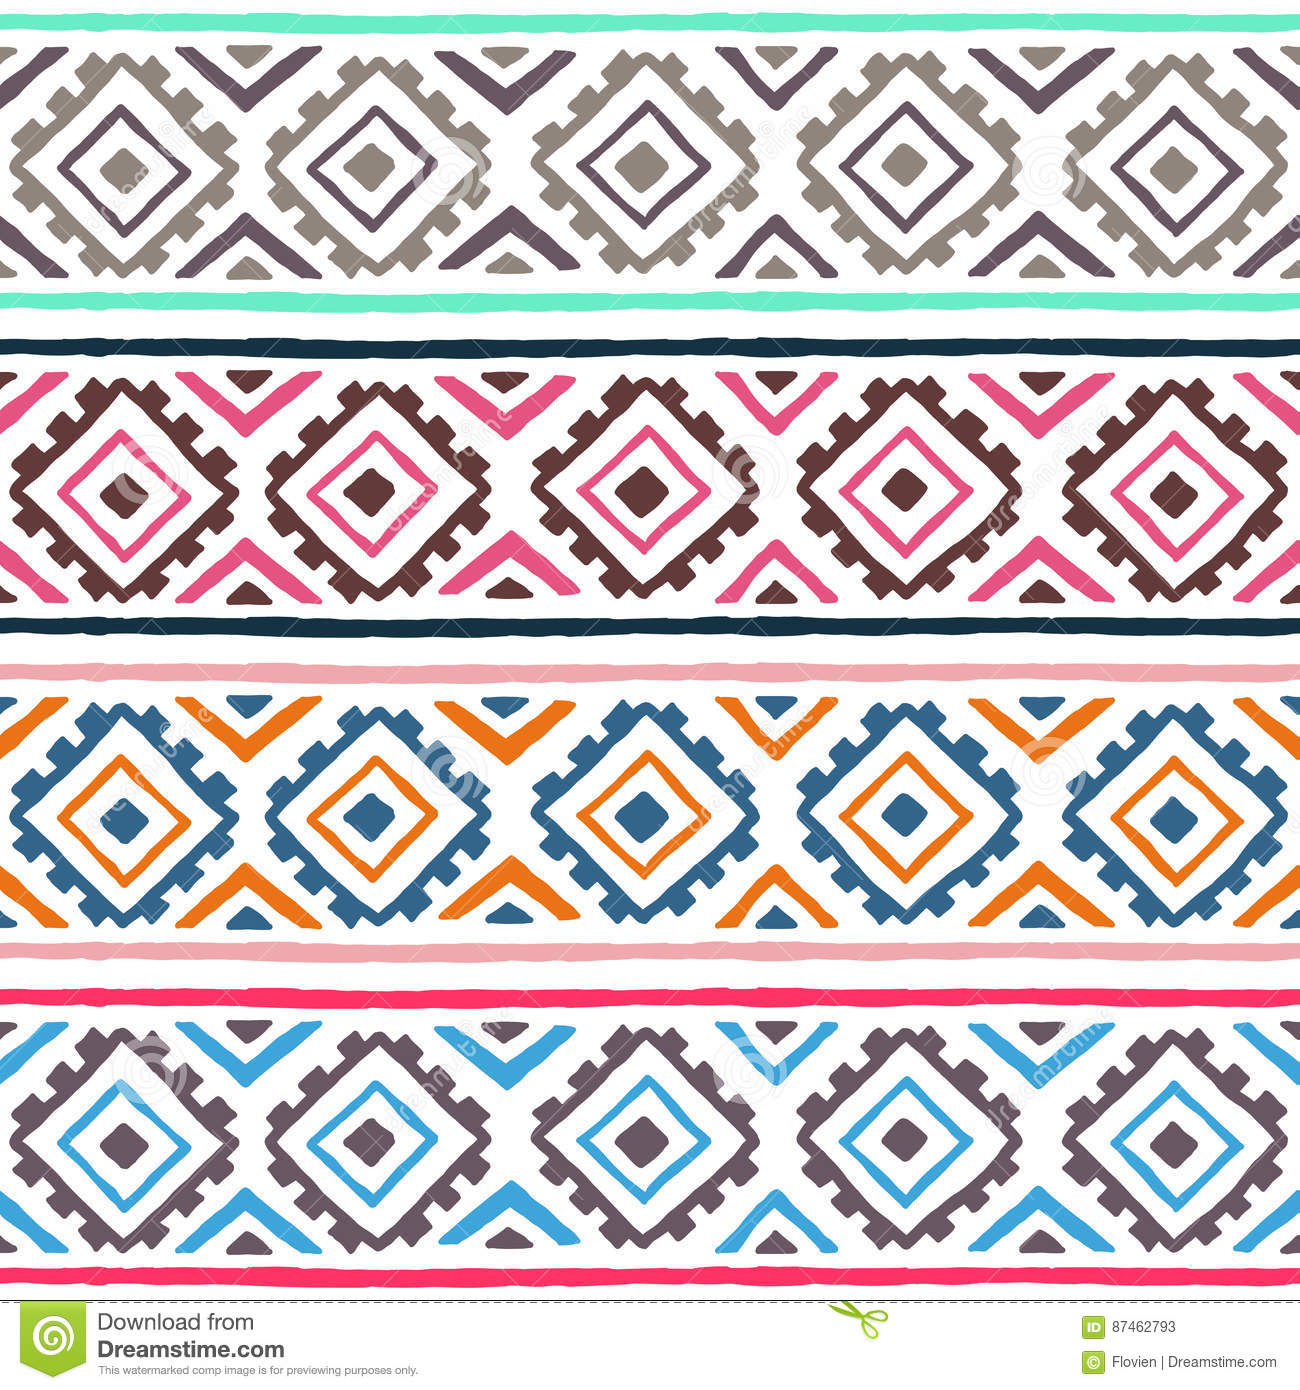 Ethnic seamless pattern. Geometric ornament. Tribal motifs. Summer striped print for your textiles.